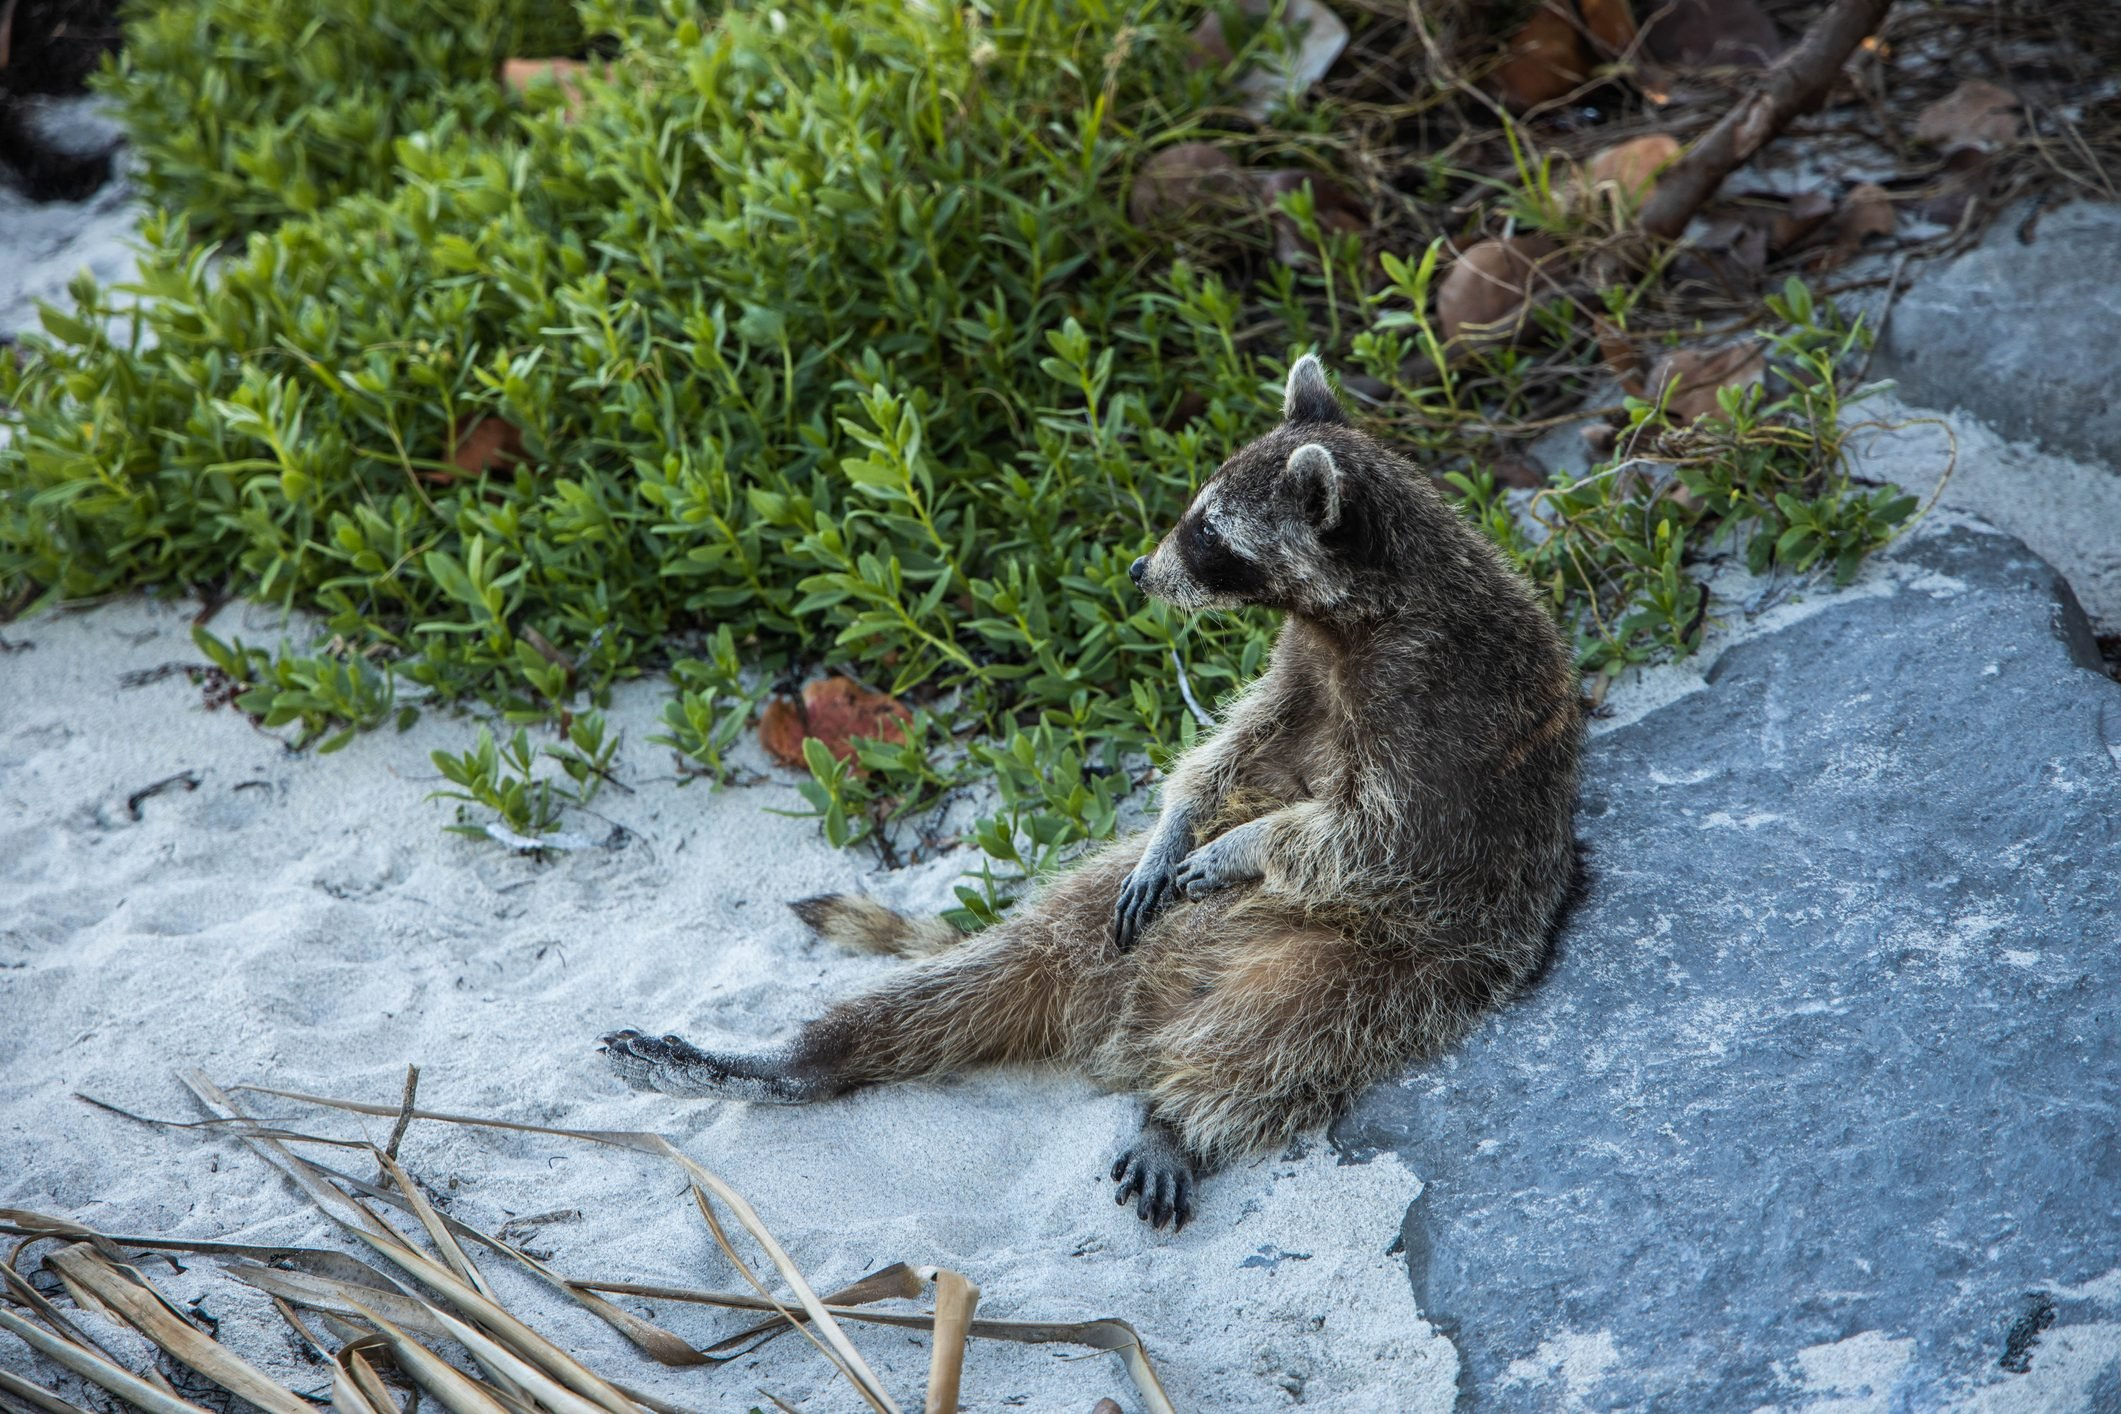 Sighting funny raccoon in the Key Biscayne state park scratching belly.